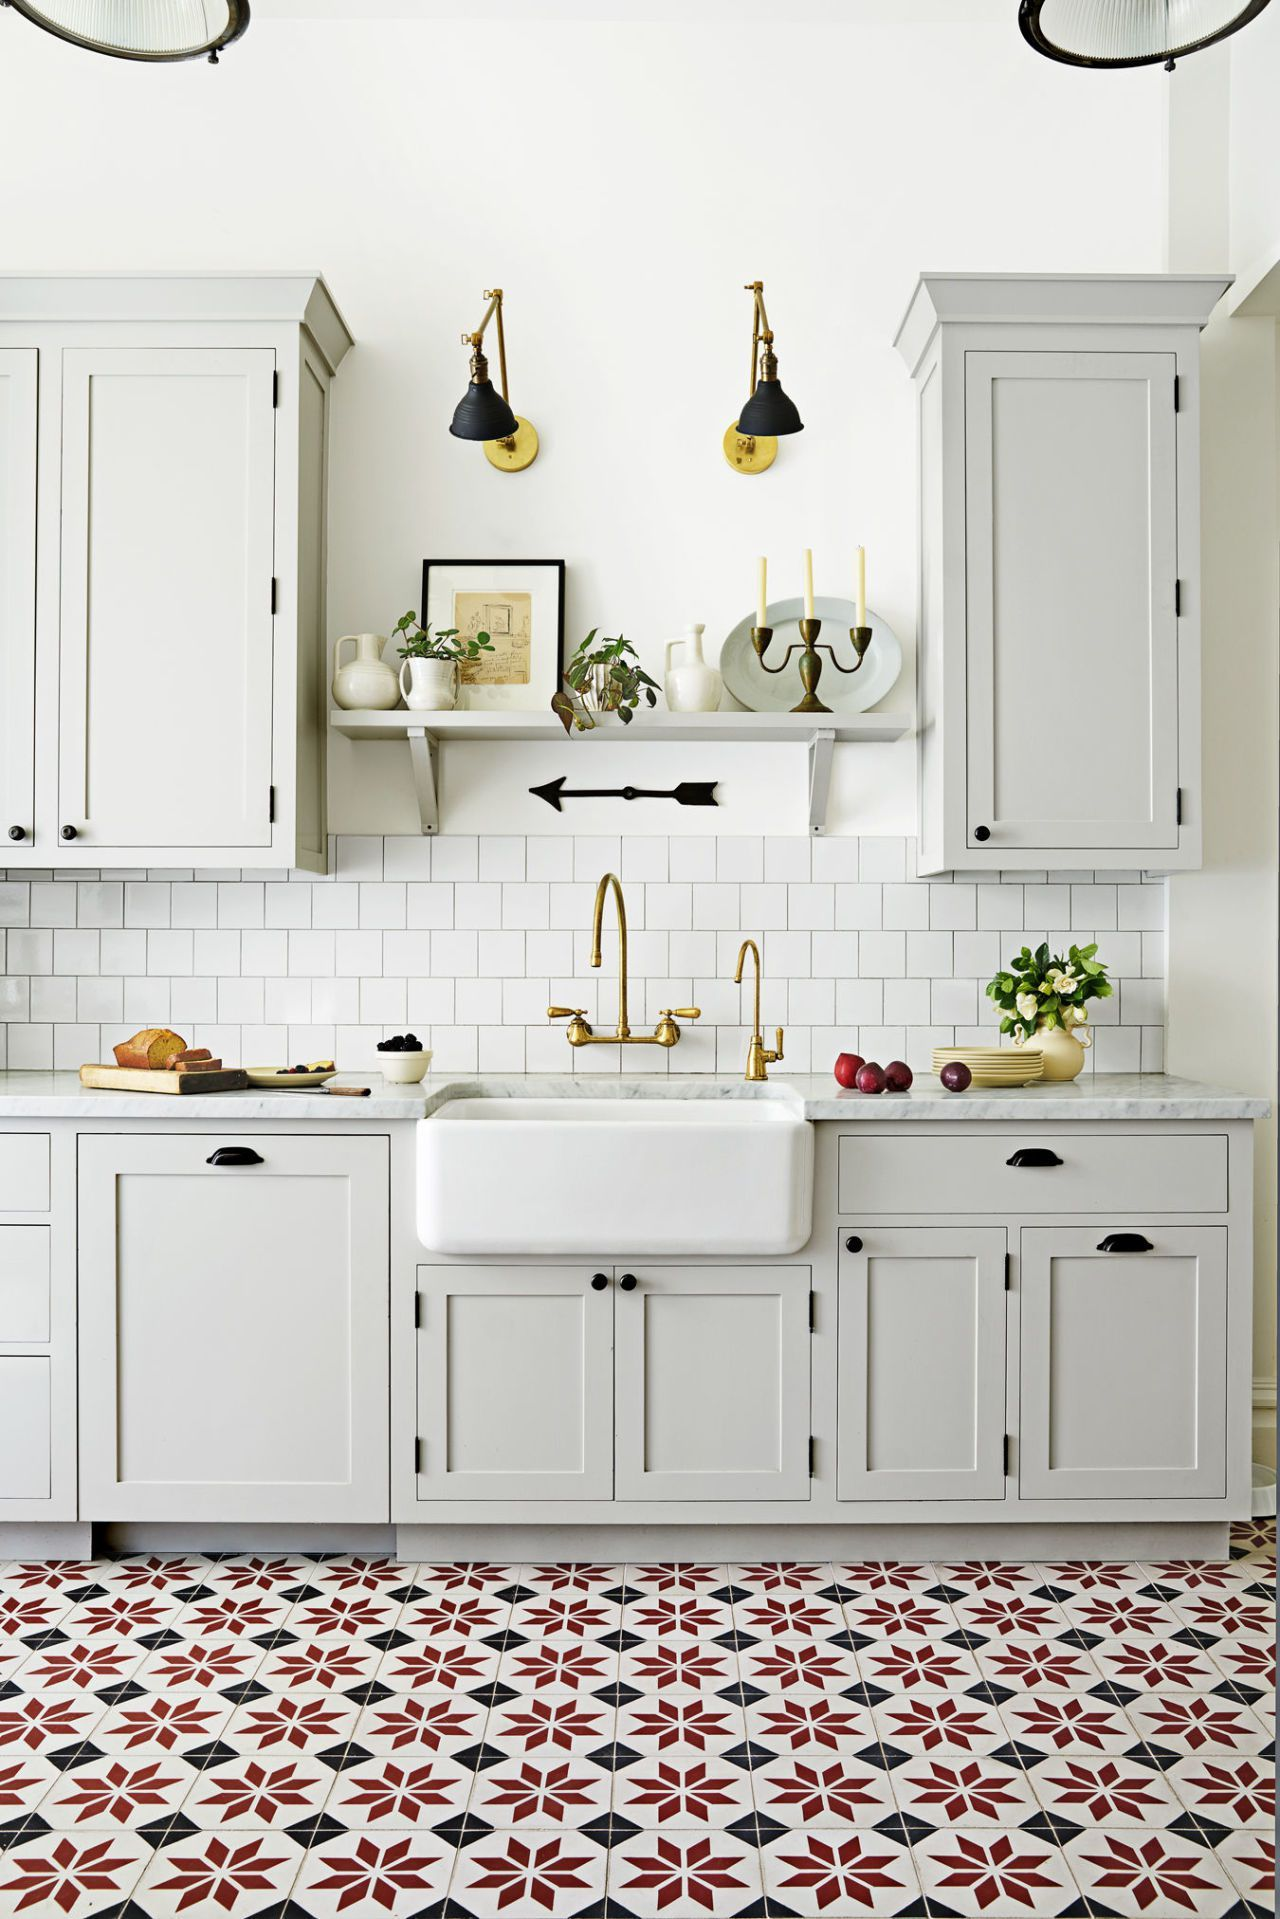 32 Kitchen Trends For 2020 That We Predict Will Be Everywhere Kitchen Remodel Layout White Kitchen Floor Kitchen Remodel Small